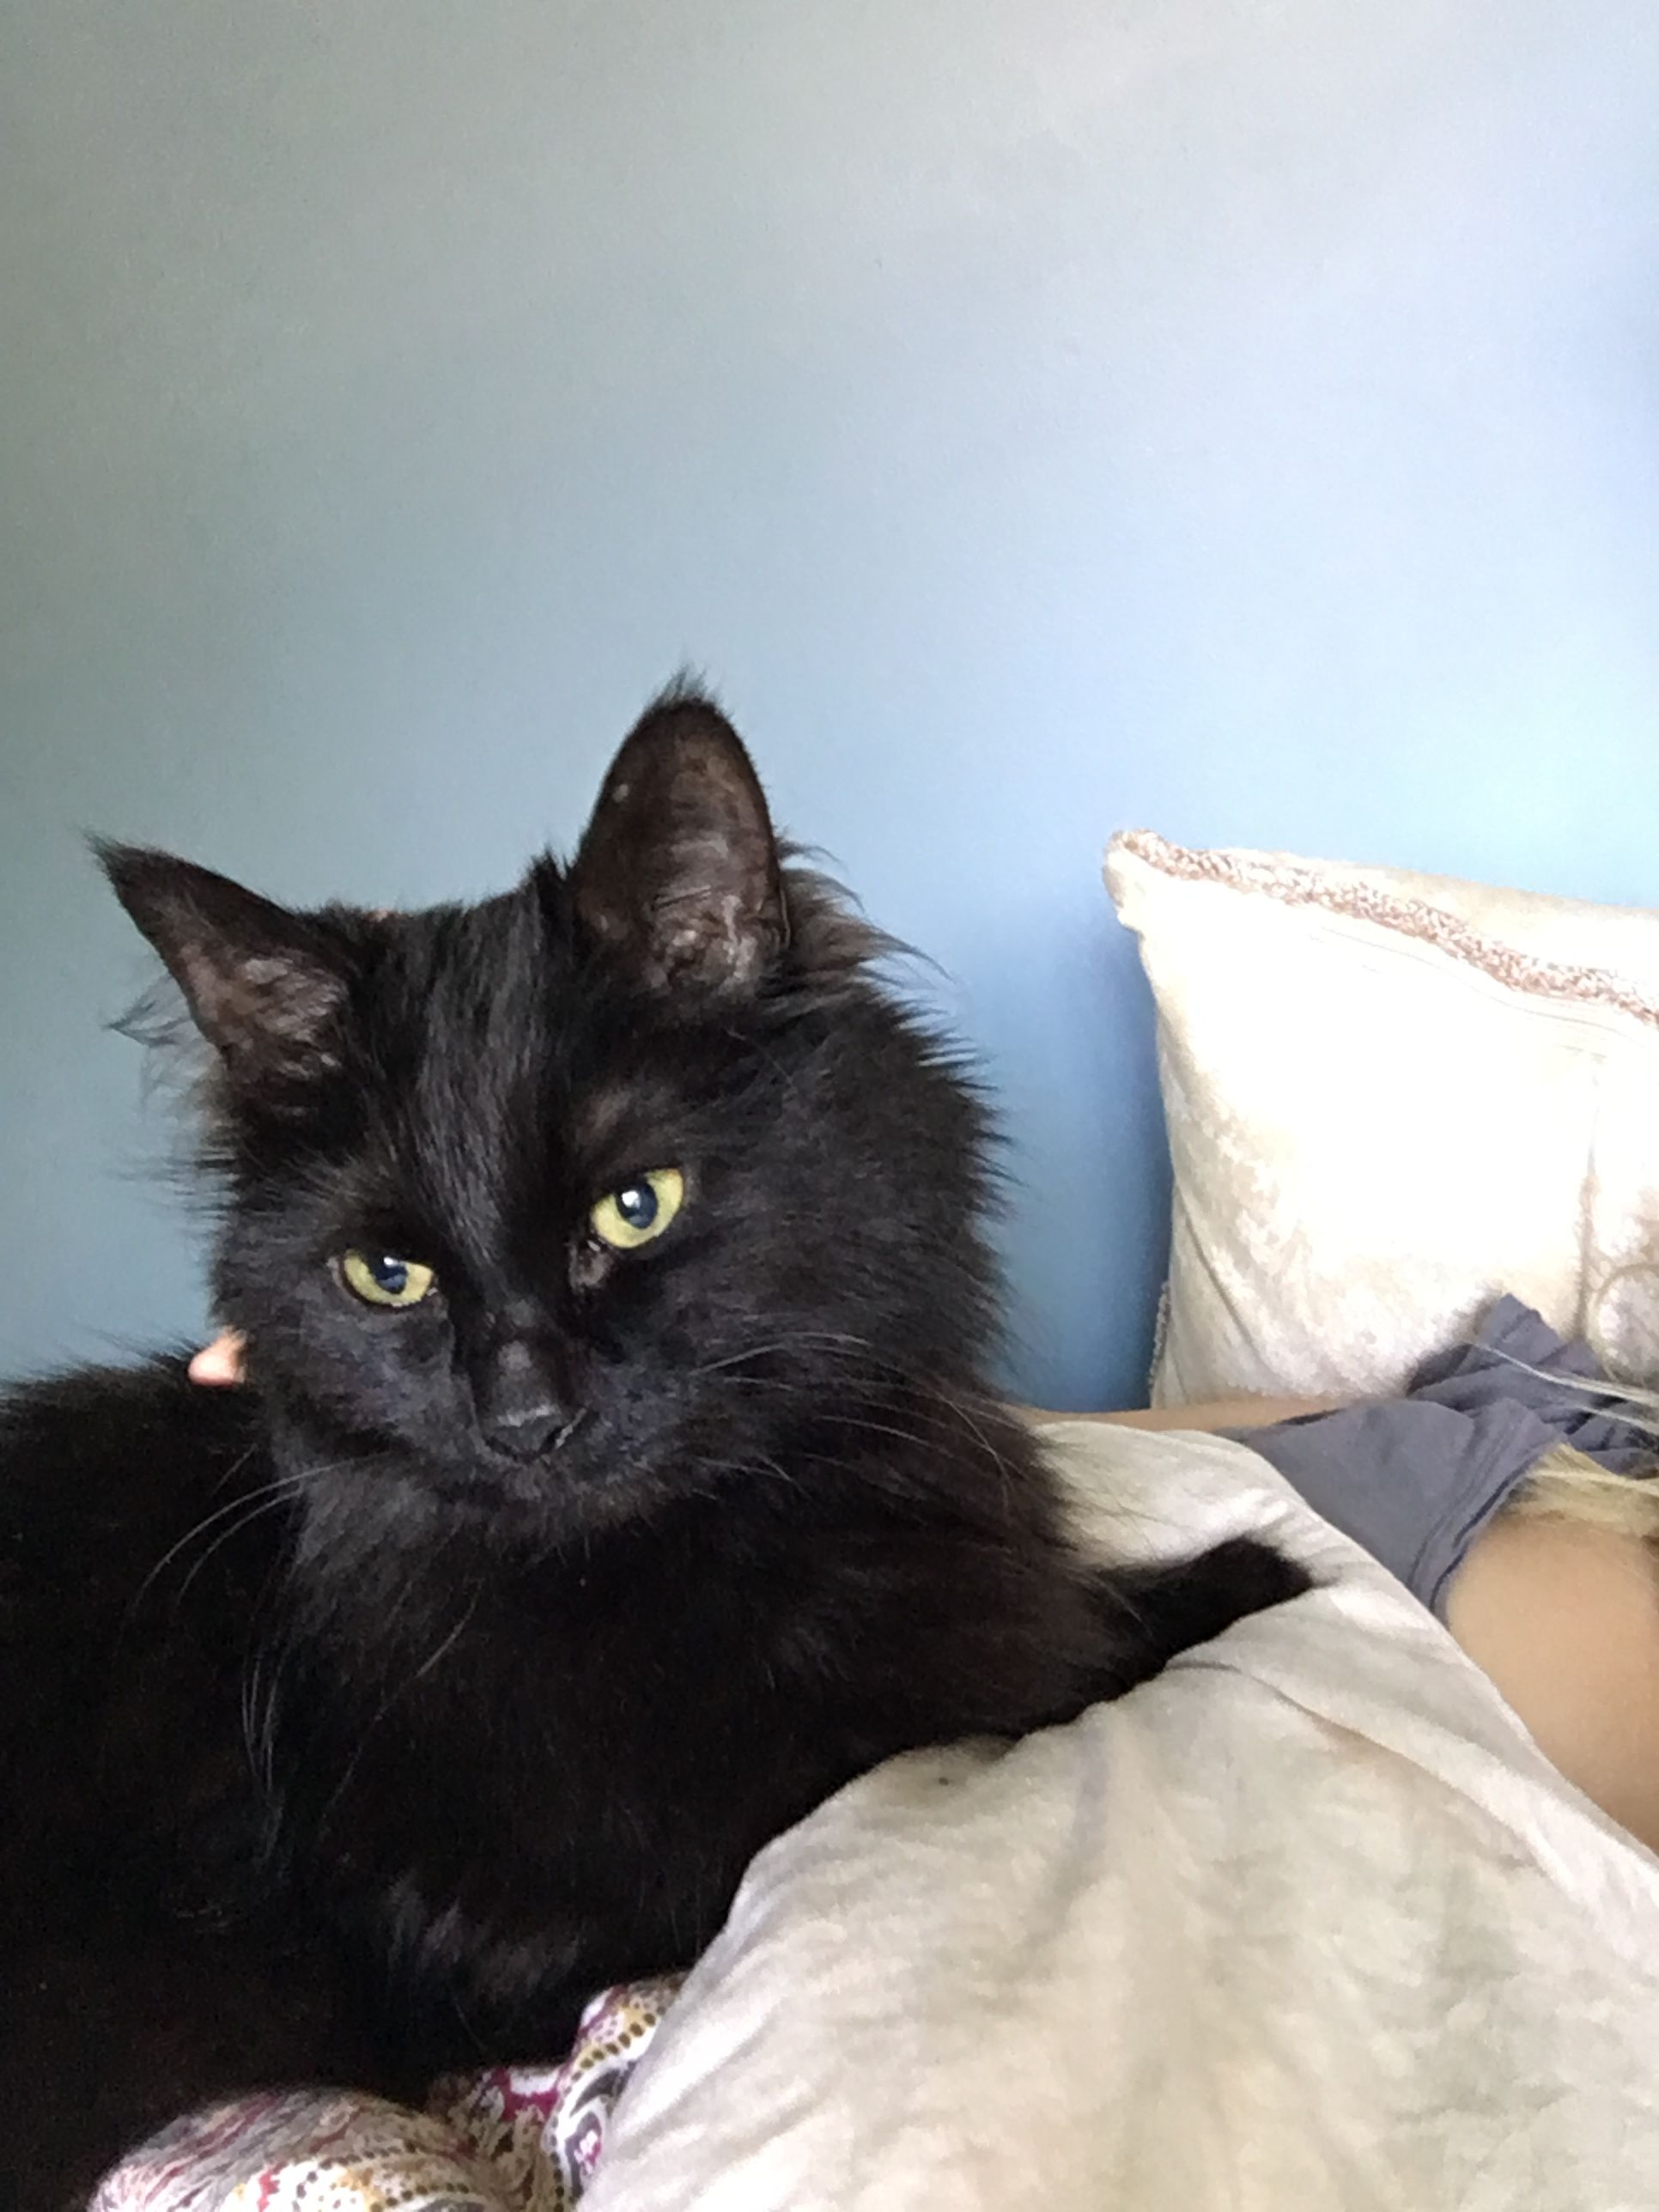 Montreal Charlie Is Looking For A Forever Home 3 Viisit Www Facebook Com Cause4paws For Details And Share Widely Contact M Black Cat Group Board